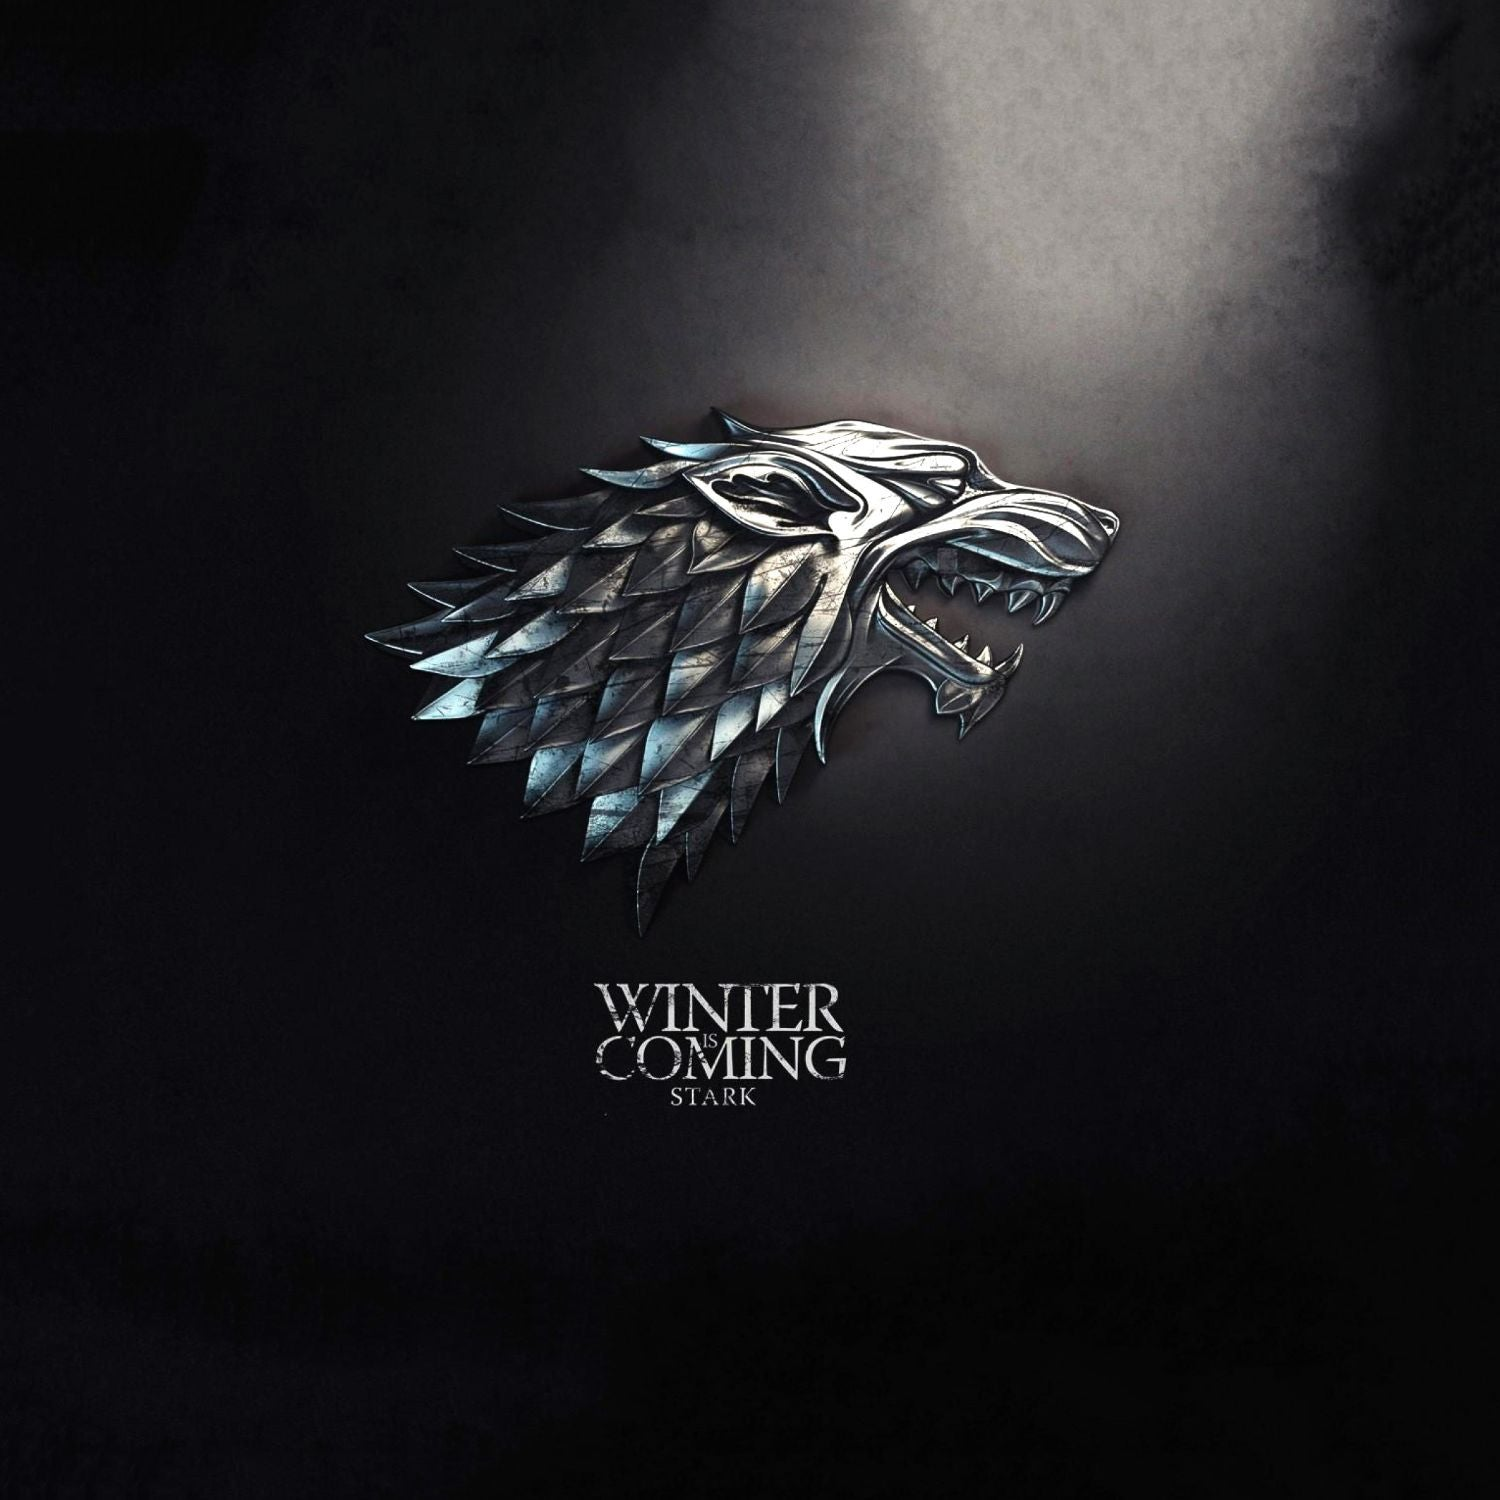 Art From Game Of Thrones Direwolf Sigil Of House Stark